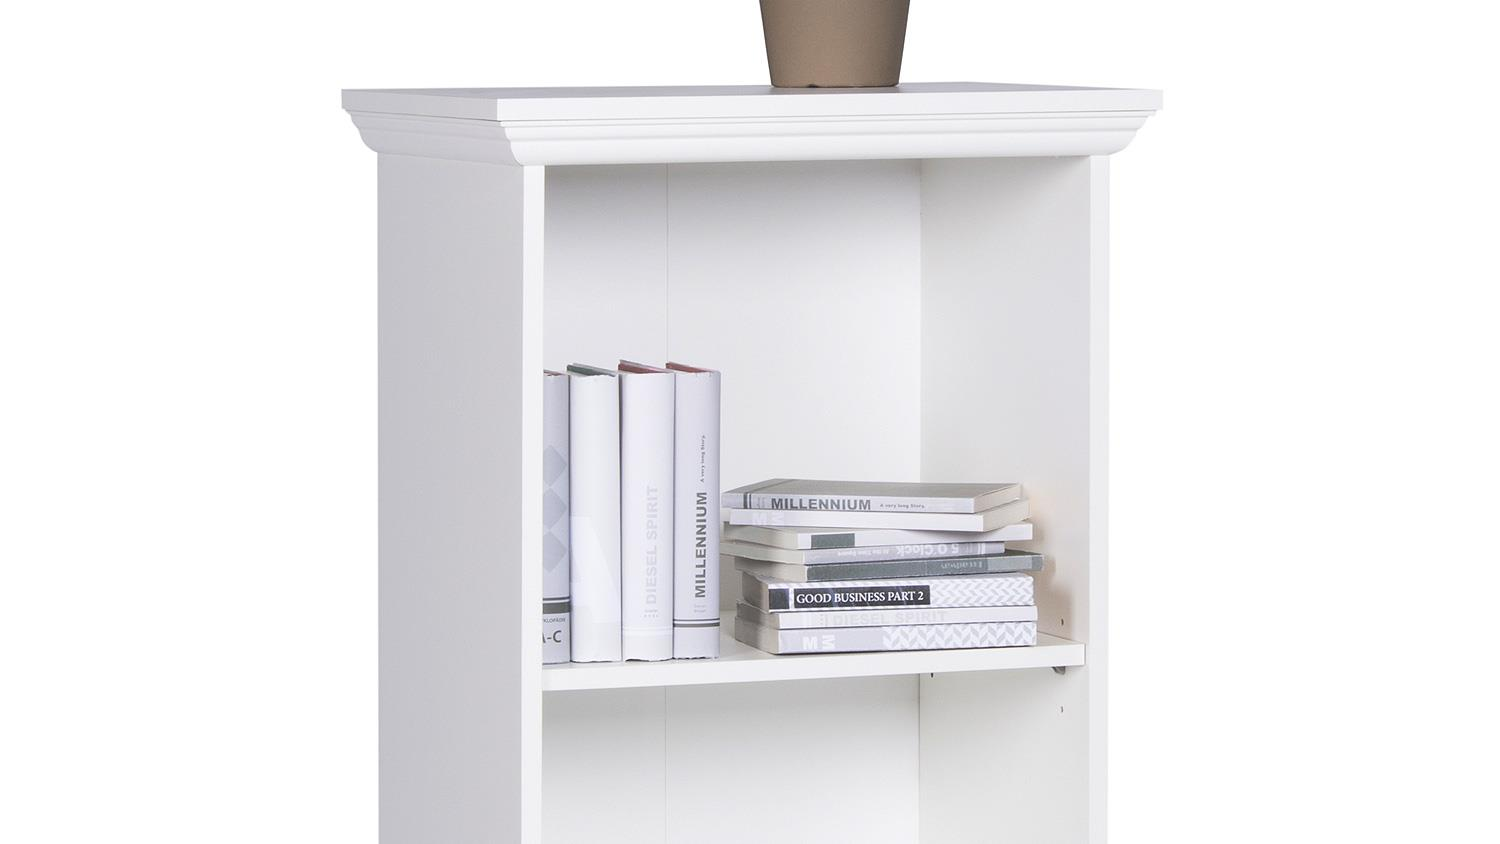 Regal Landhausstil Regal Landwood Bücherregal In Weiß Mit 3 Fächern 42 Cm Landhausstil